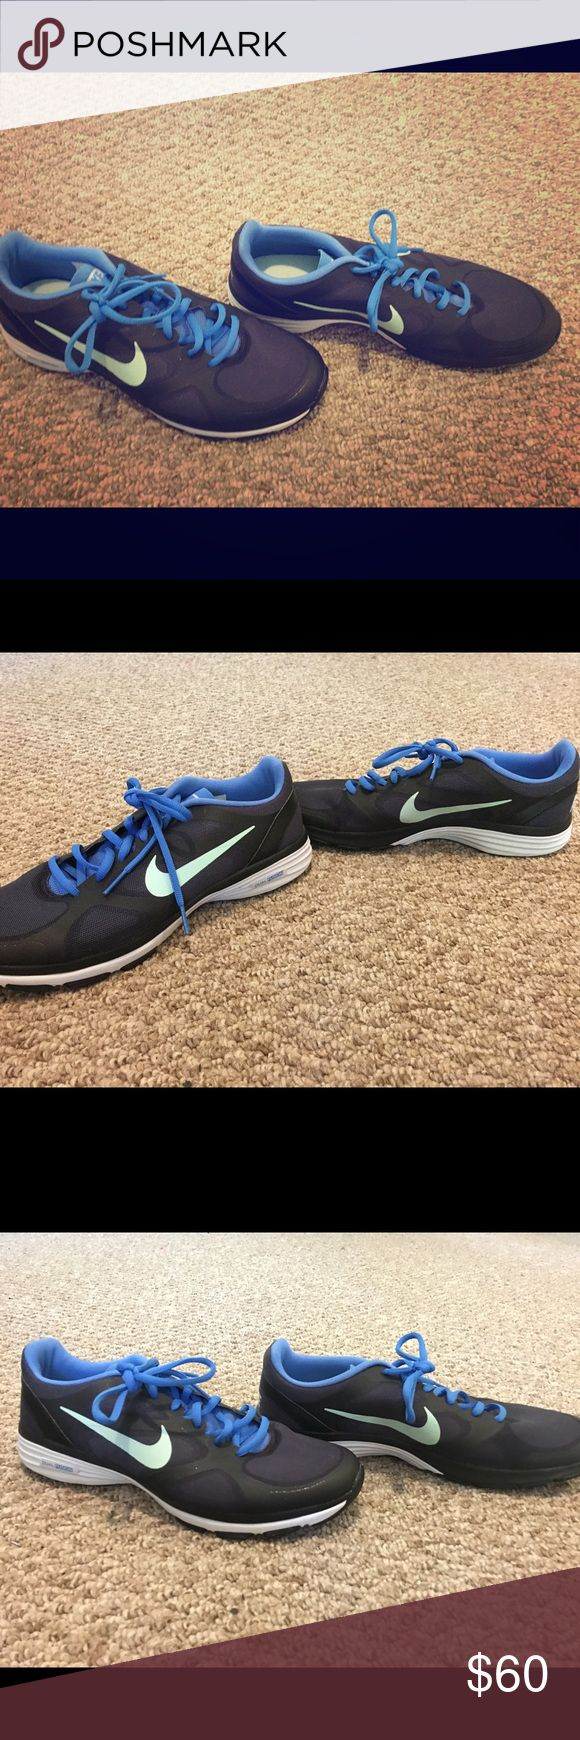 Nike Dual Fusion TR Women's Training Shoes Nike Dual Fusion TR Women's Training Shoes 443837 012 Black/Blue - US 9.5 Nike Shoes Sneakers